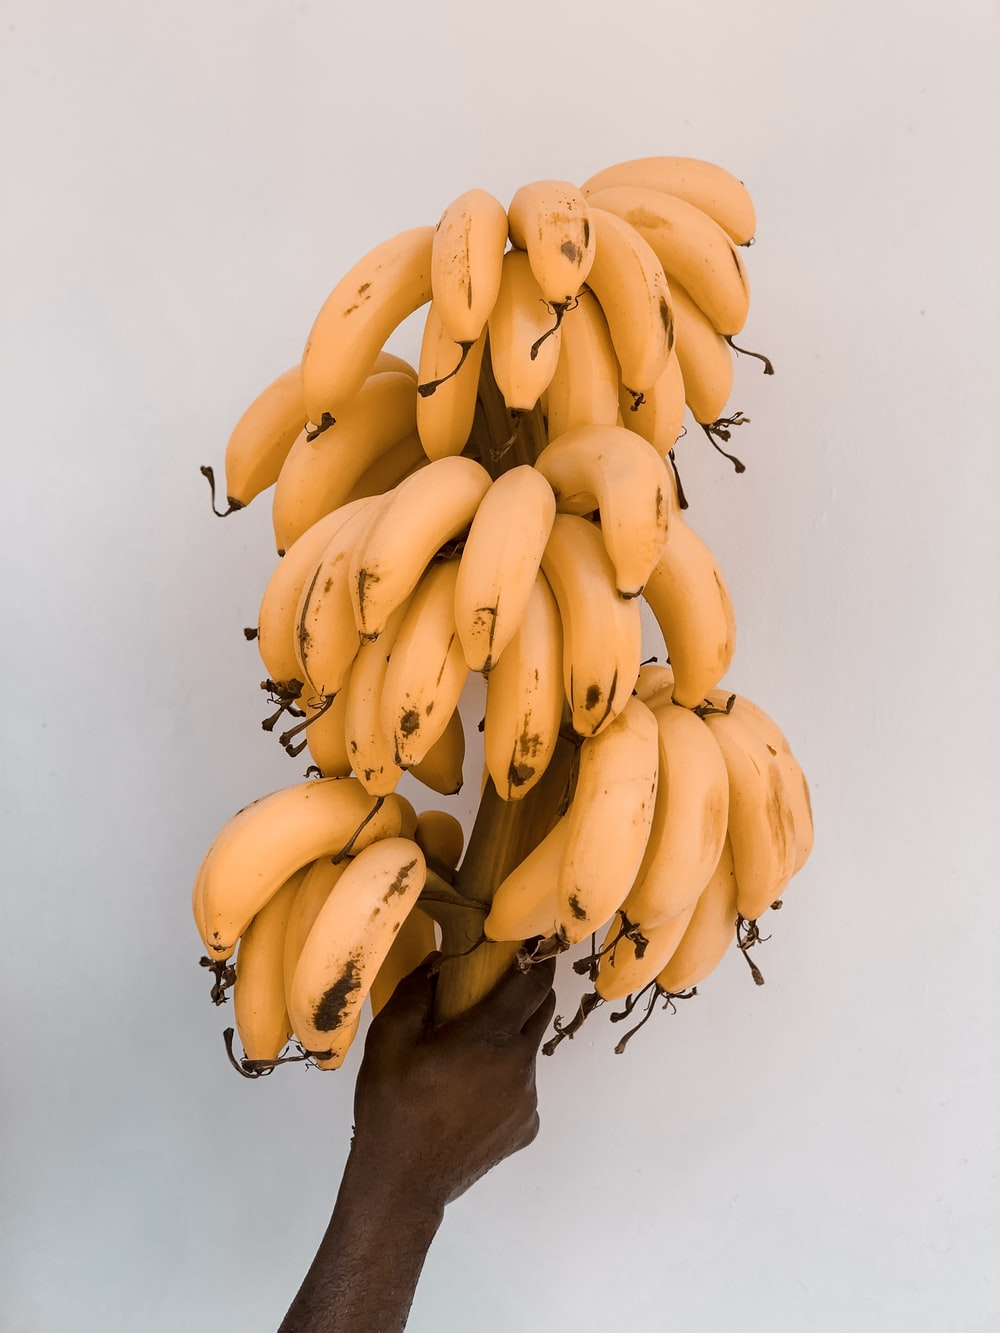 Facts About Carbs In Banana